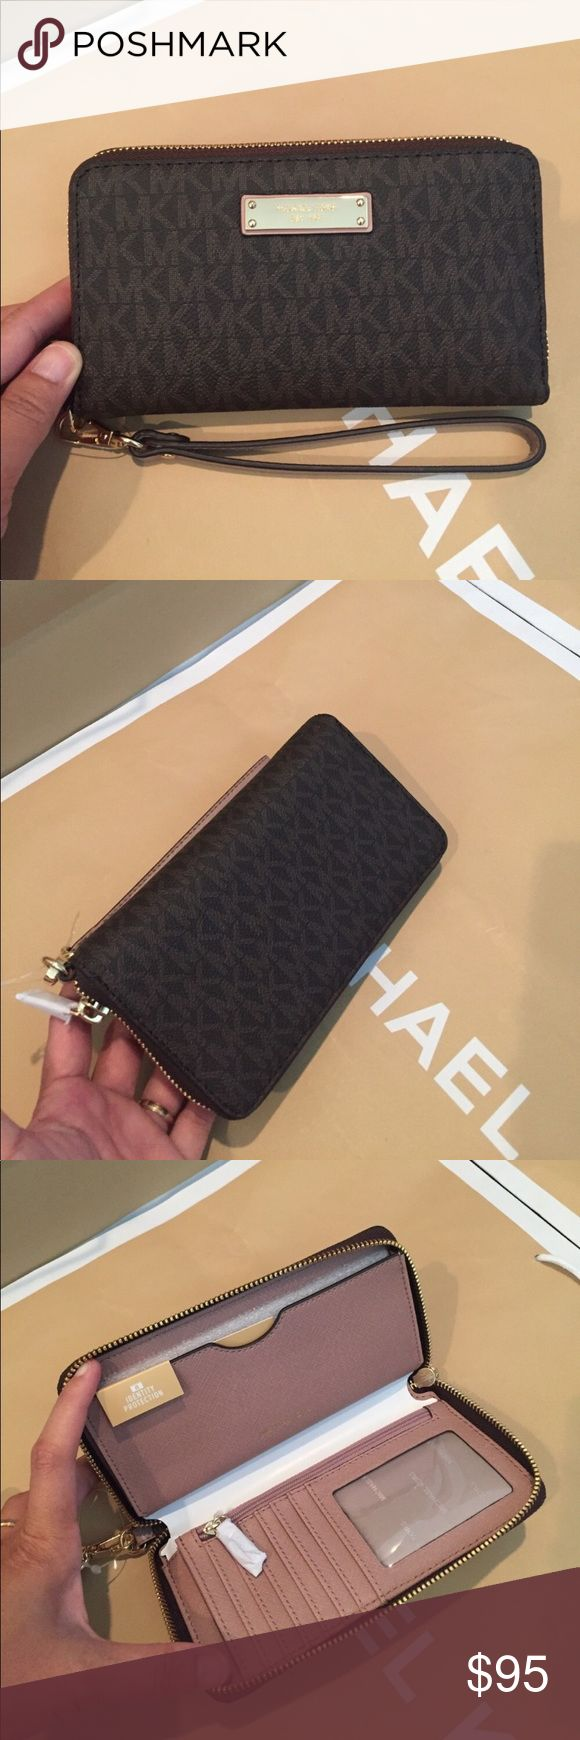 🌴Michael Kors Jet Set Large FM Phone Case🌴🌷 💯 %  Authentic Michael kors Brown/Fawn🌸With a slim removable wrist strap and bold goldtone hardware, this is one piece that's both reliable and refined. Zip around closure. MK logo plaque on front. Lined interior features phone compartment, zip compartment, credit card slots and ID window.   Specifications MaterialMK Signature OriginImported Dimensions6.5 x 4 x 1 in. Care & CleaningSpot clean with damp cloth FeaturesZip around closure. Michael…